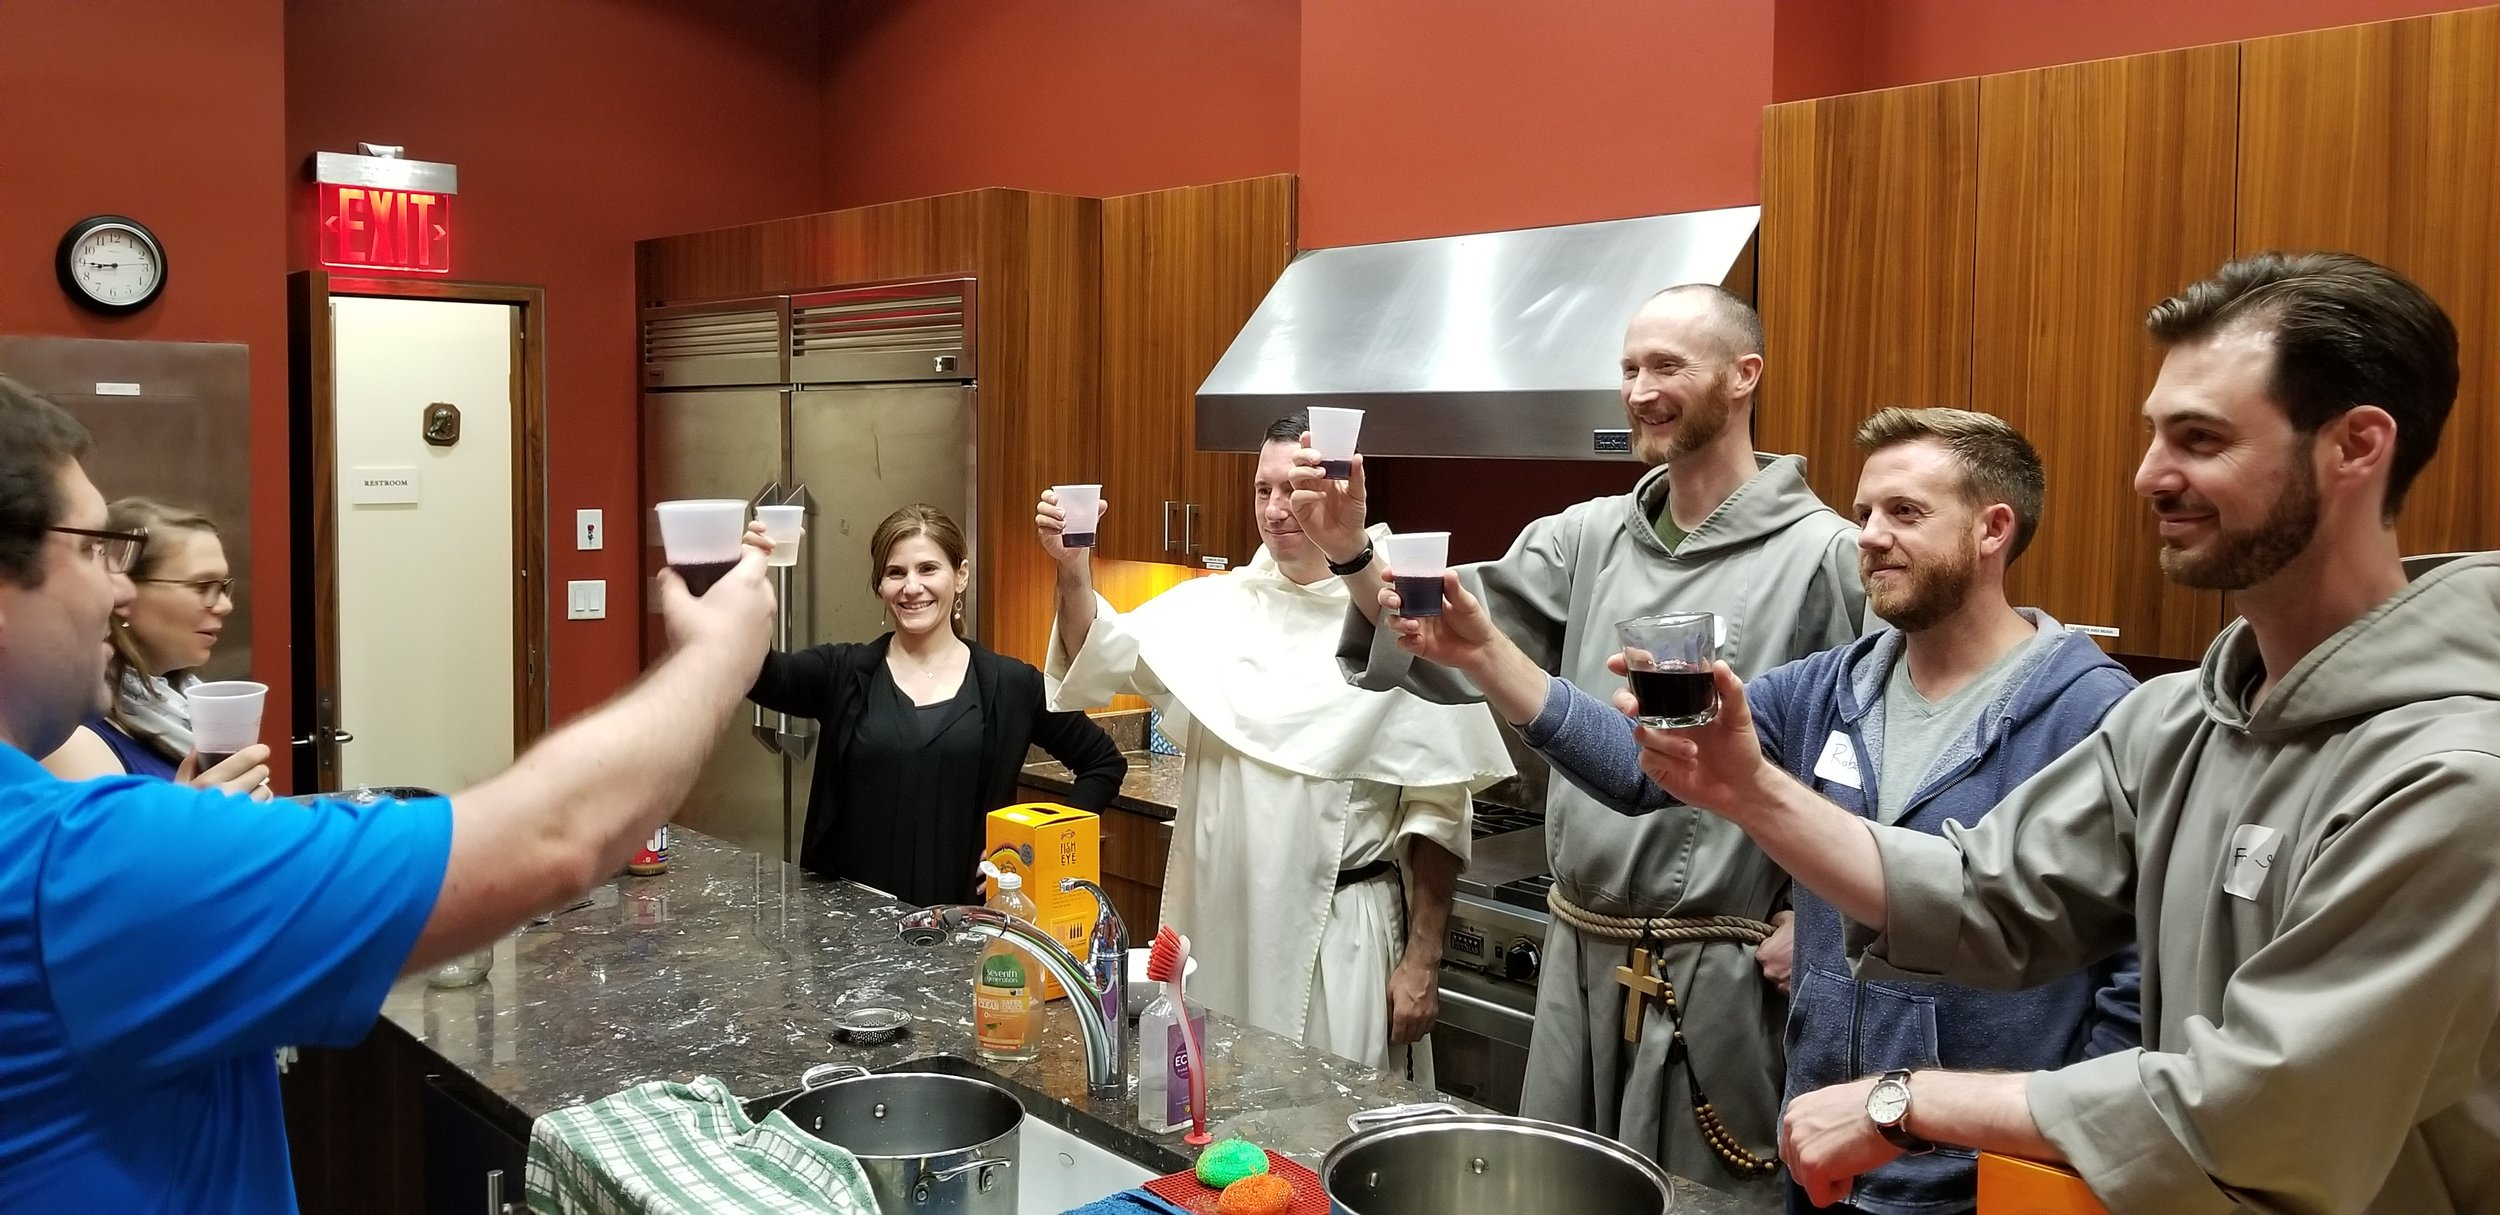 We had time for celebration with some wine too (a first for a Recovering Origins retreat)….lots of joy doing the Lord's work…here we are toasting the Lord …